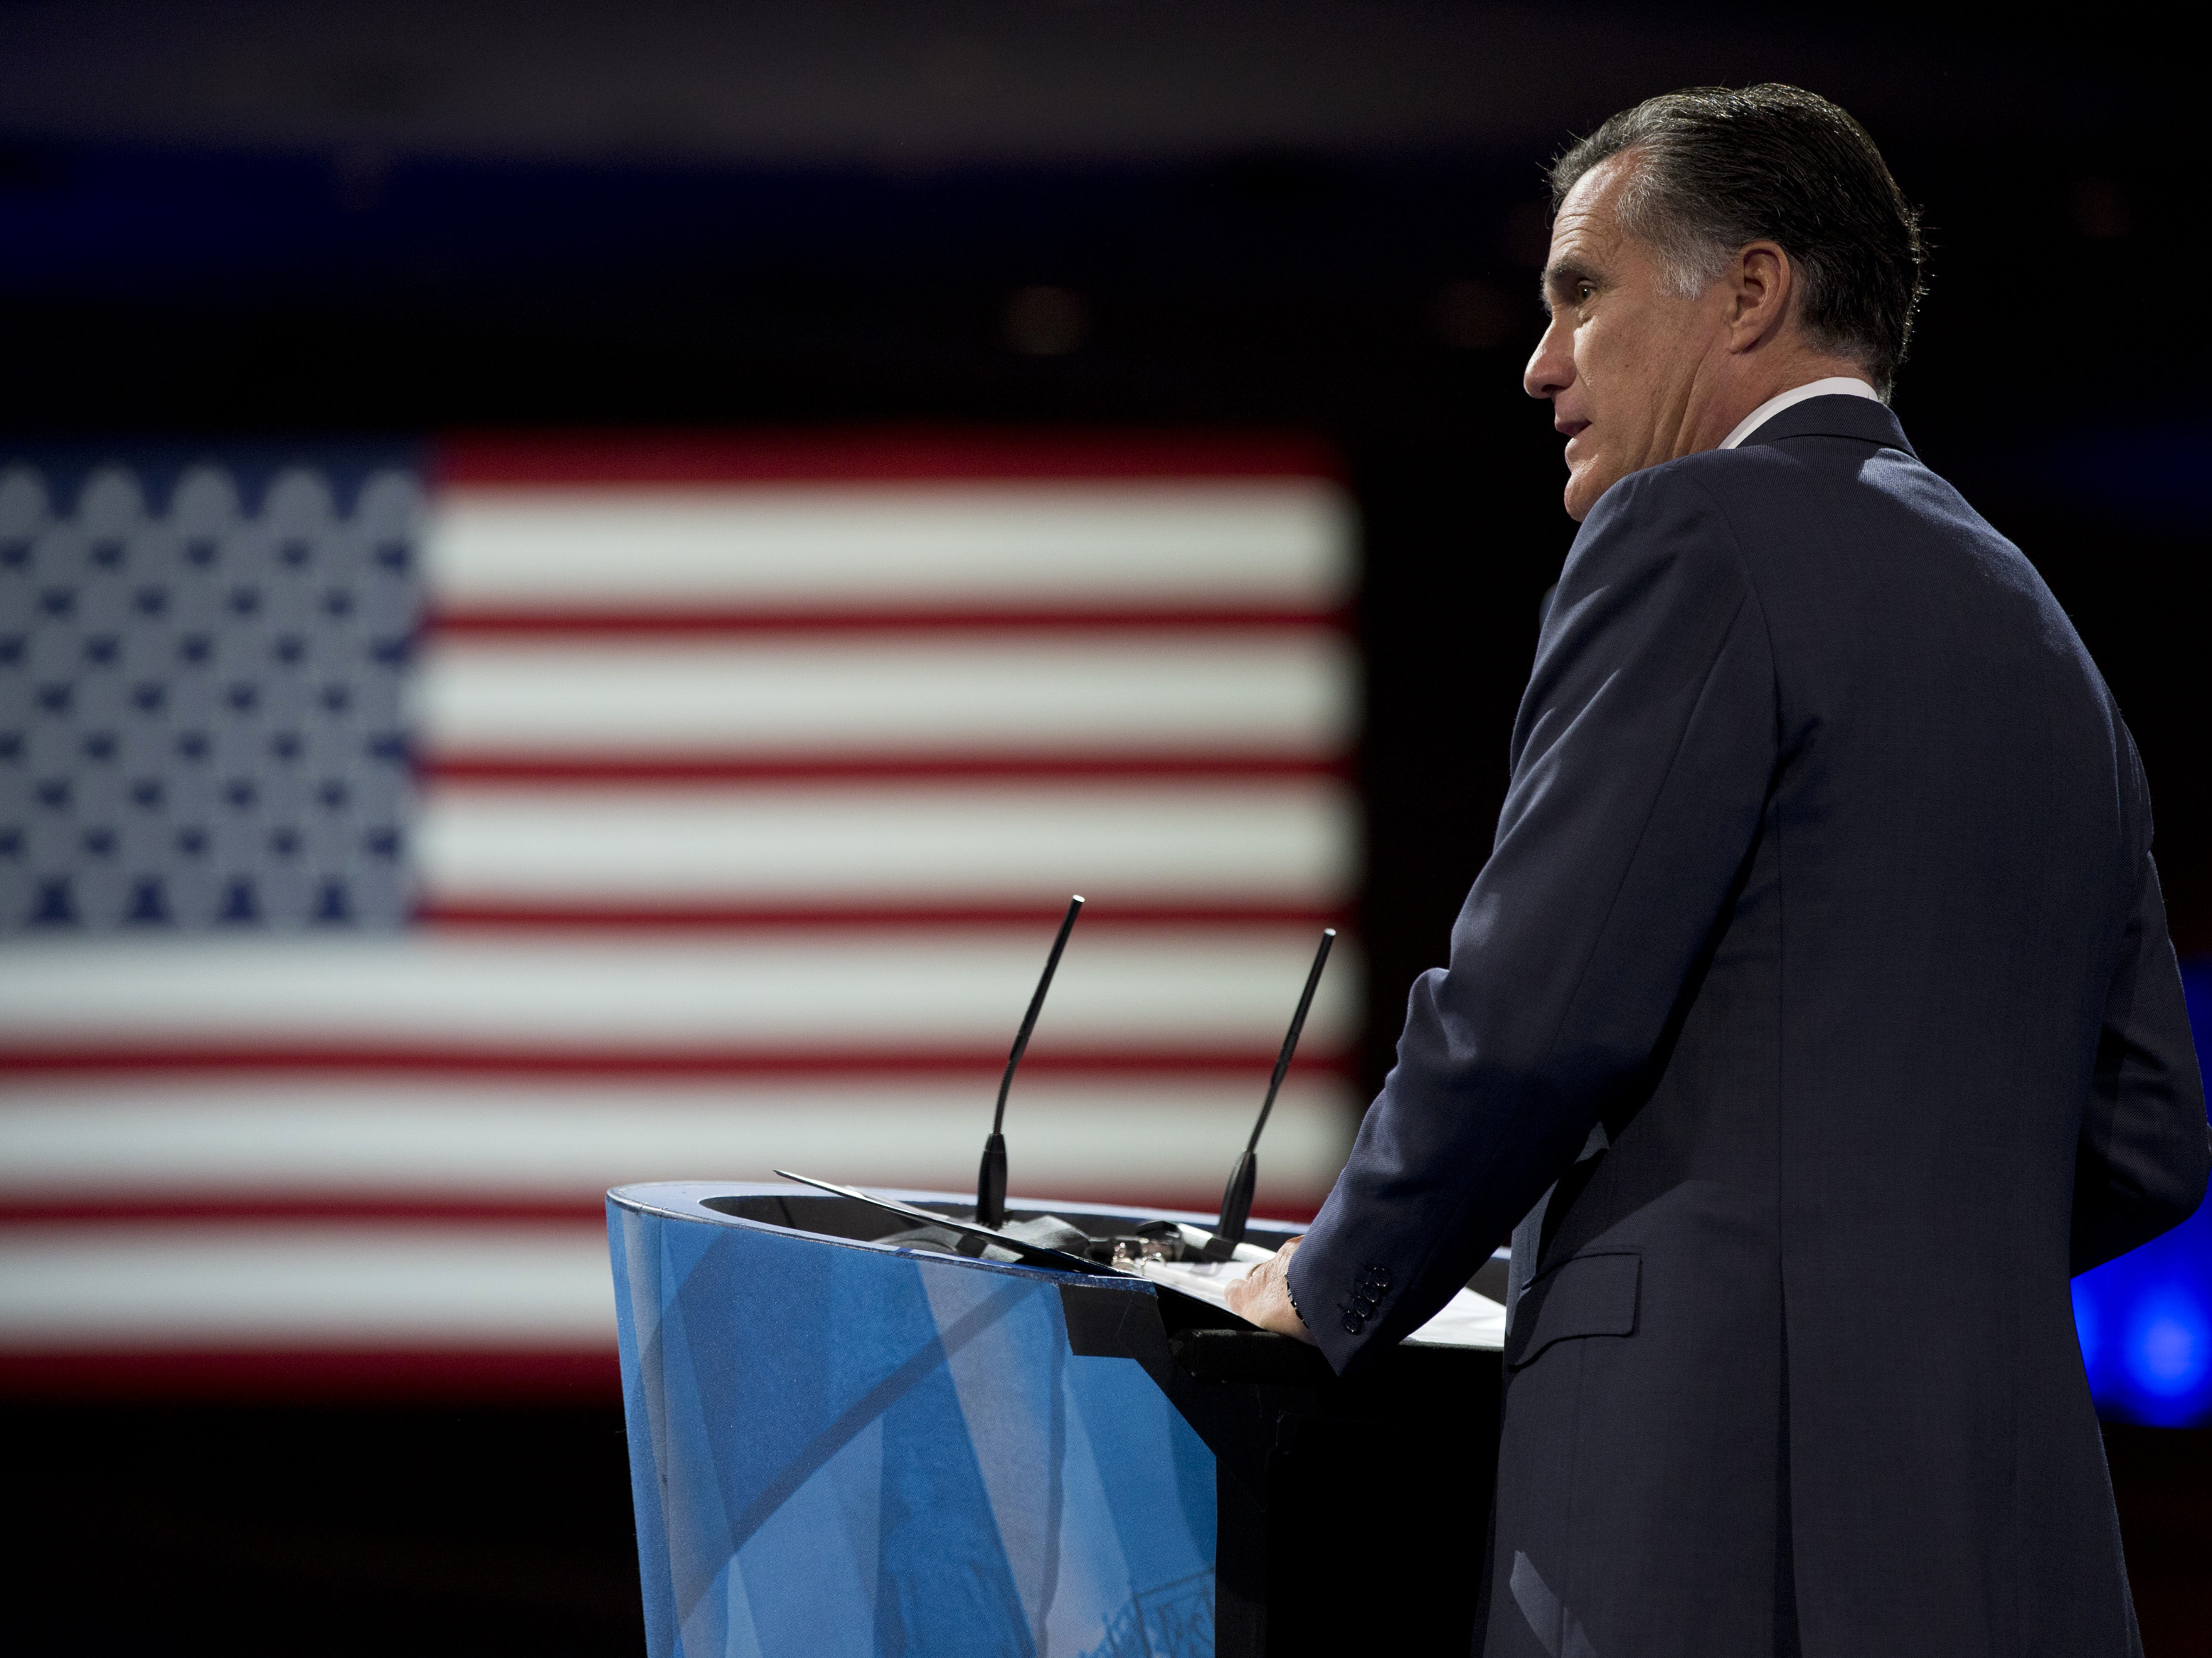 Romney Not Done With Politics